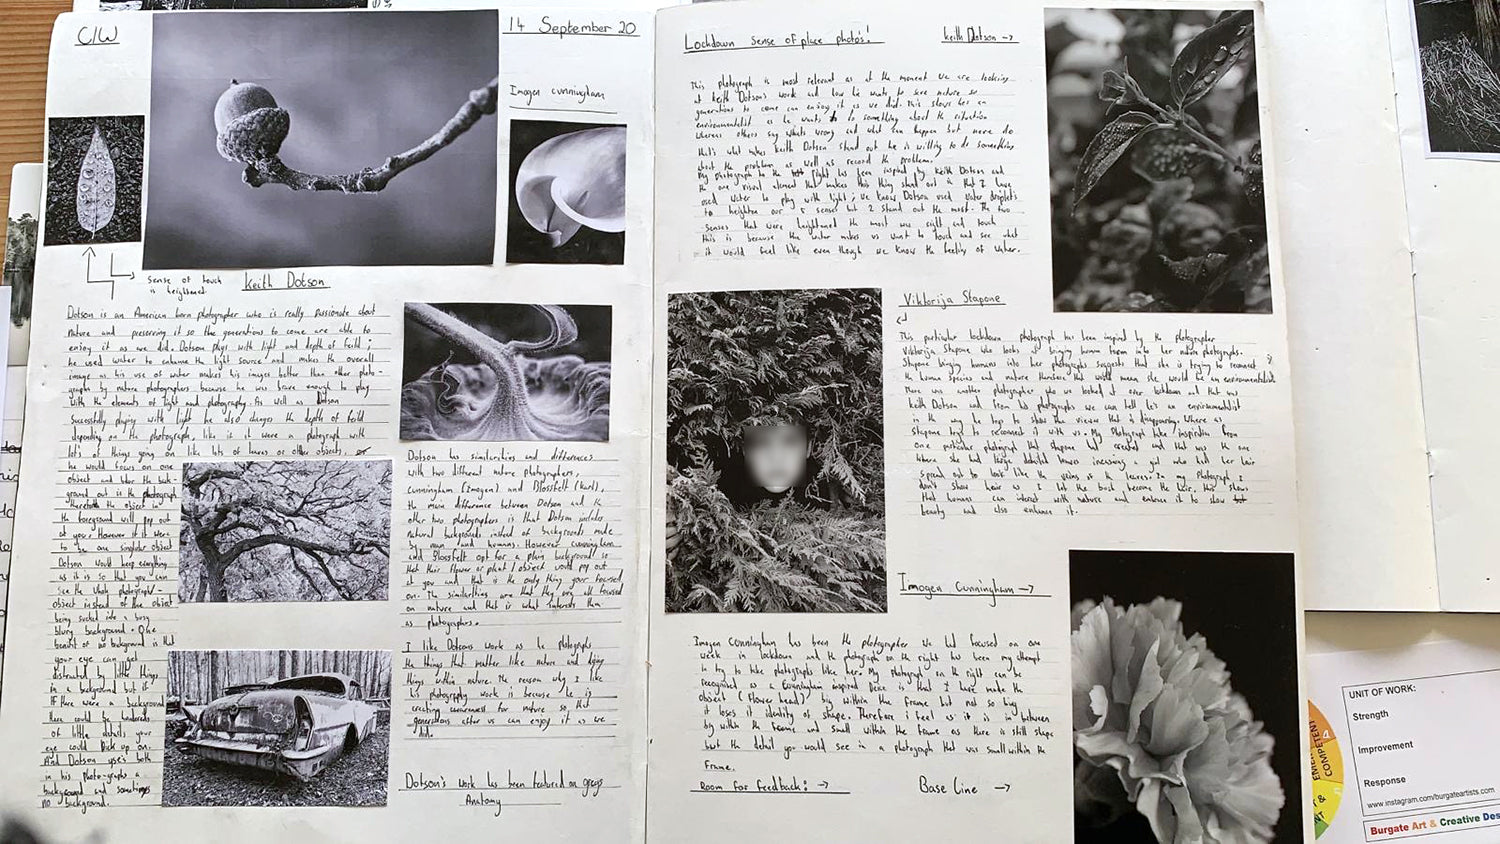 An example of a student journal, featuring several photographs by Keith Dotson, surrounded by the handwritten notes and photos of the student.